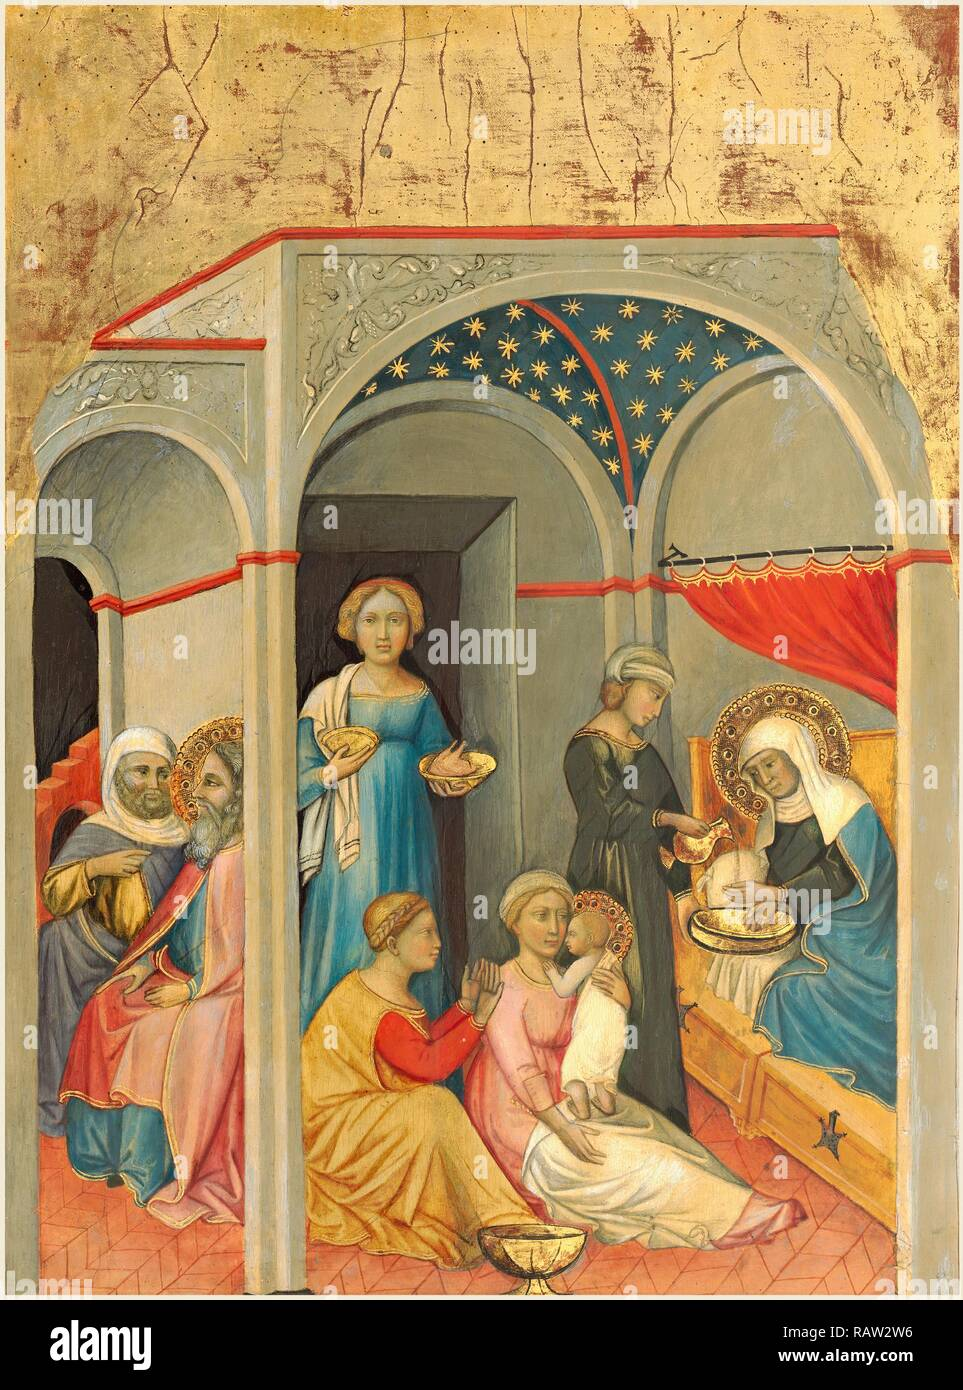 Andrea di Bartolo, Italian (documented from 1389-died 1428), The Nativity of the Virgin, c. 1400, tempera on panel reimagined - Stock Image